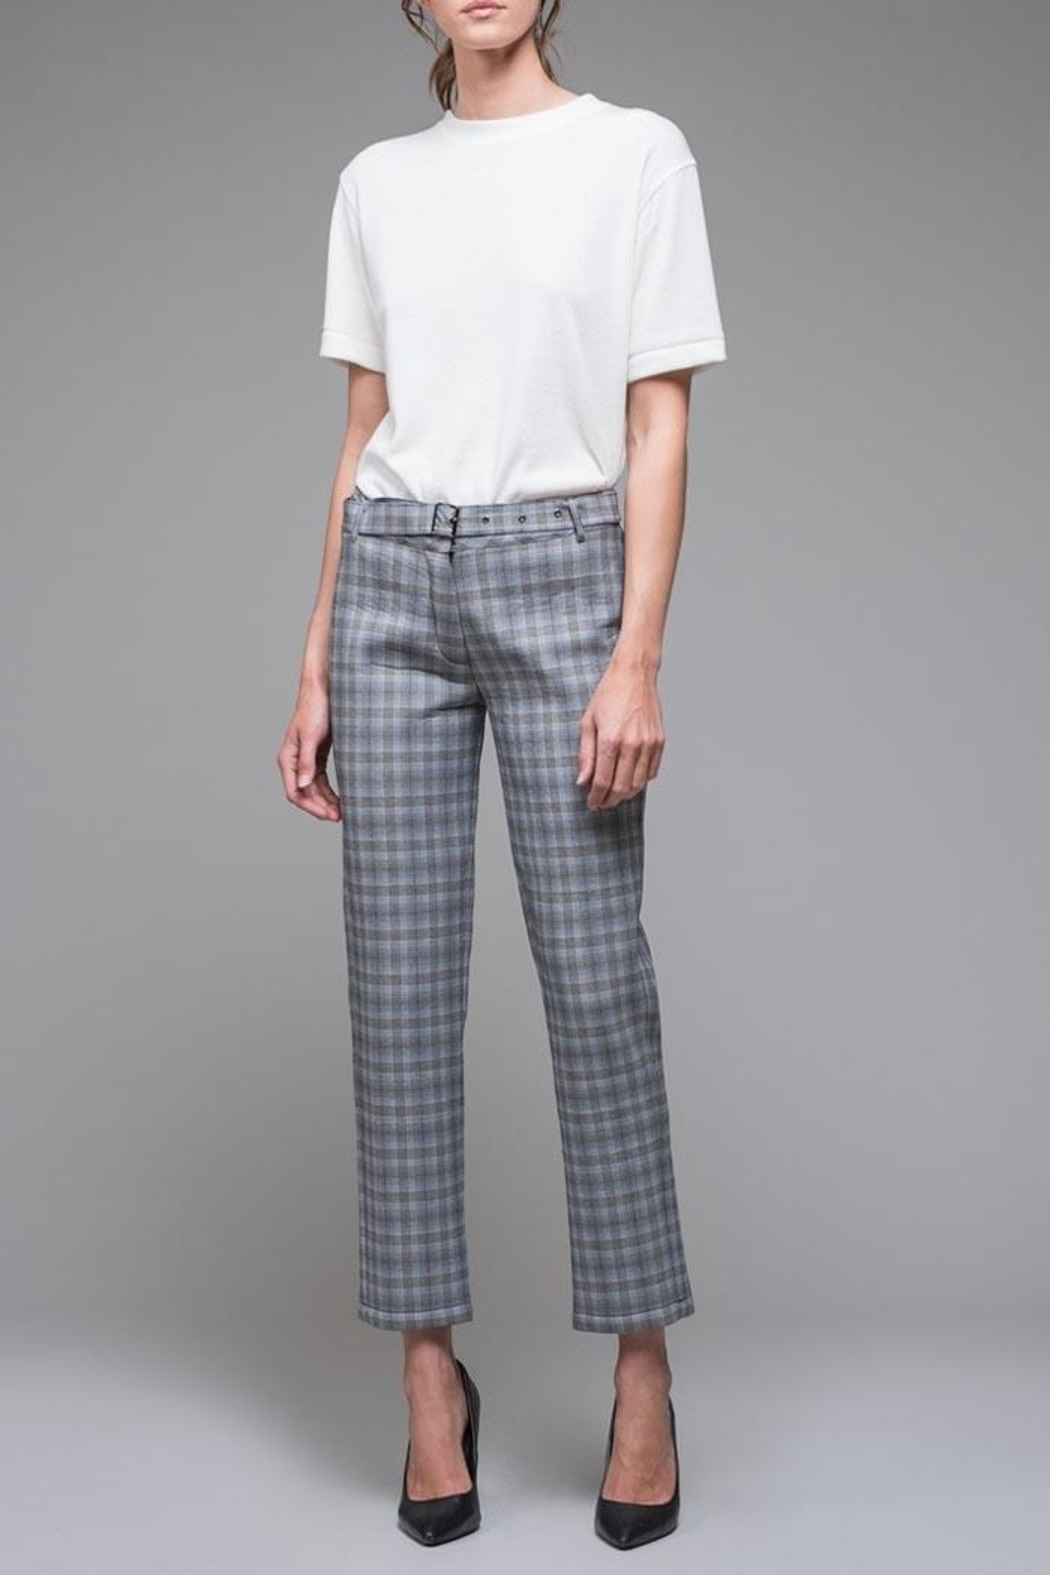 EVIDNT Blue Plaid Pant - Front Cropped Image